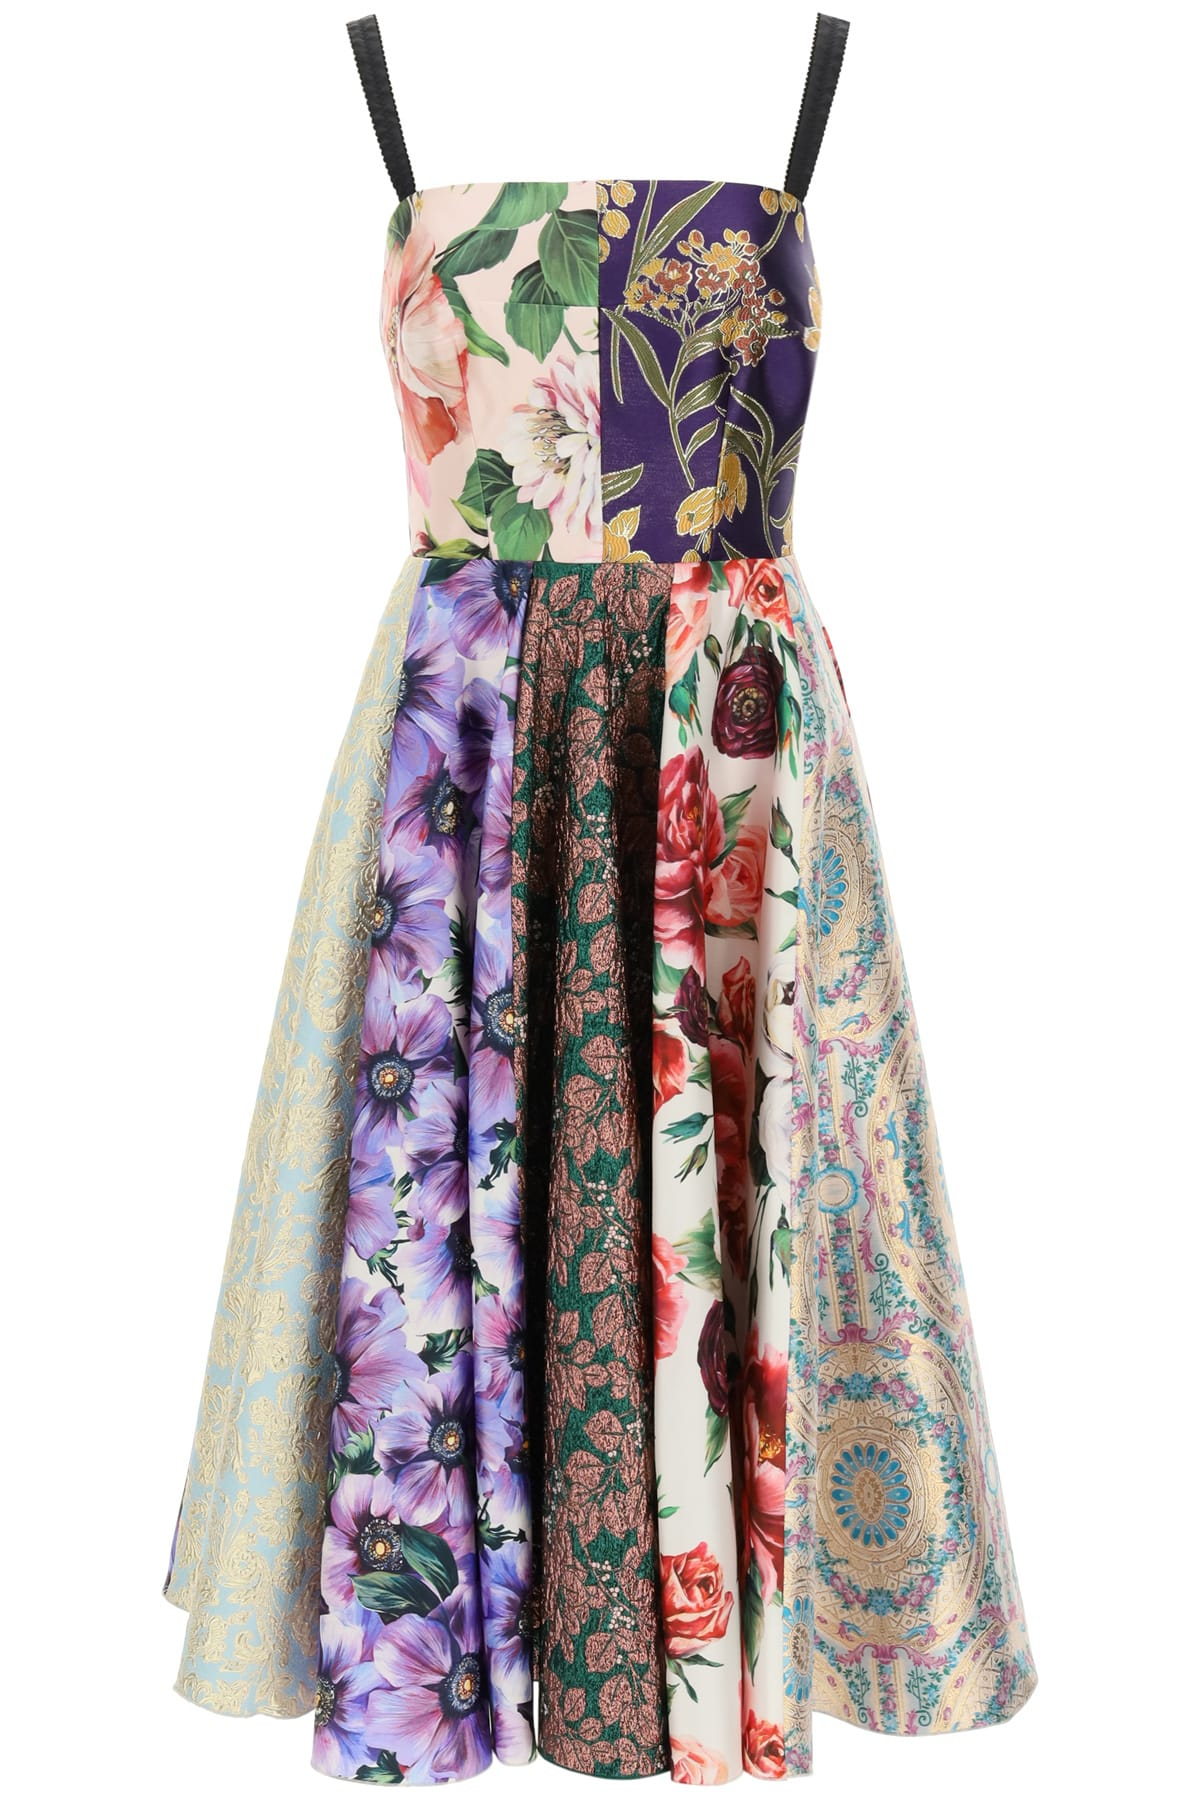 Buy Dolce & Gabbana Longuette Dress In Patchwork Jacquard online, shop Dolce & Gabbana with free shipping